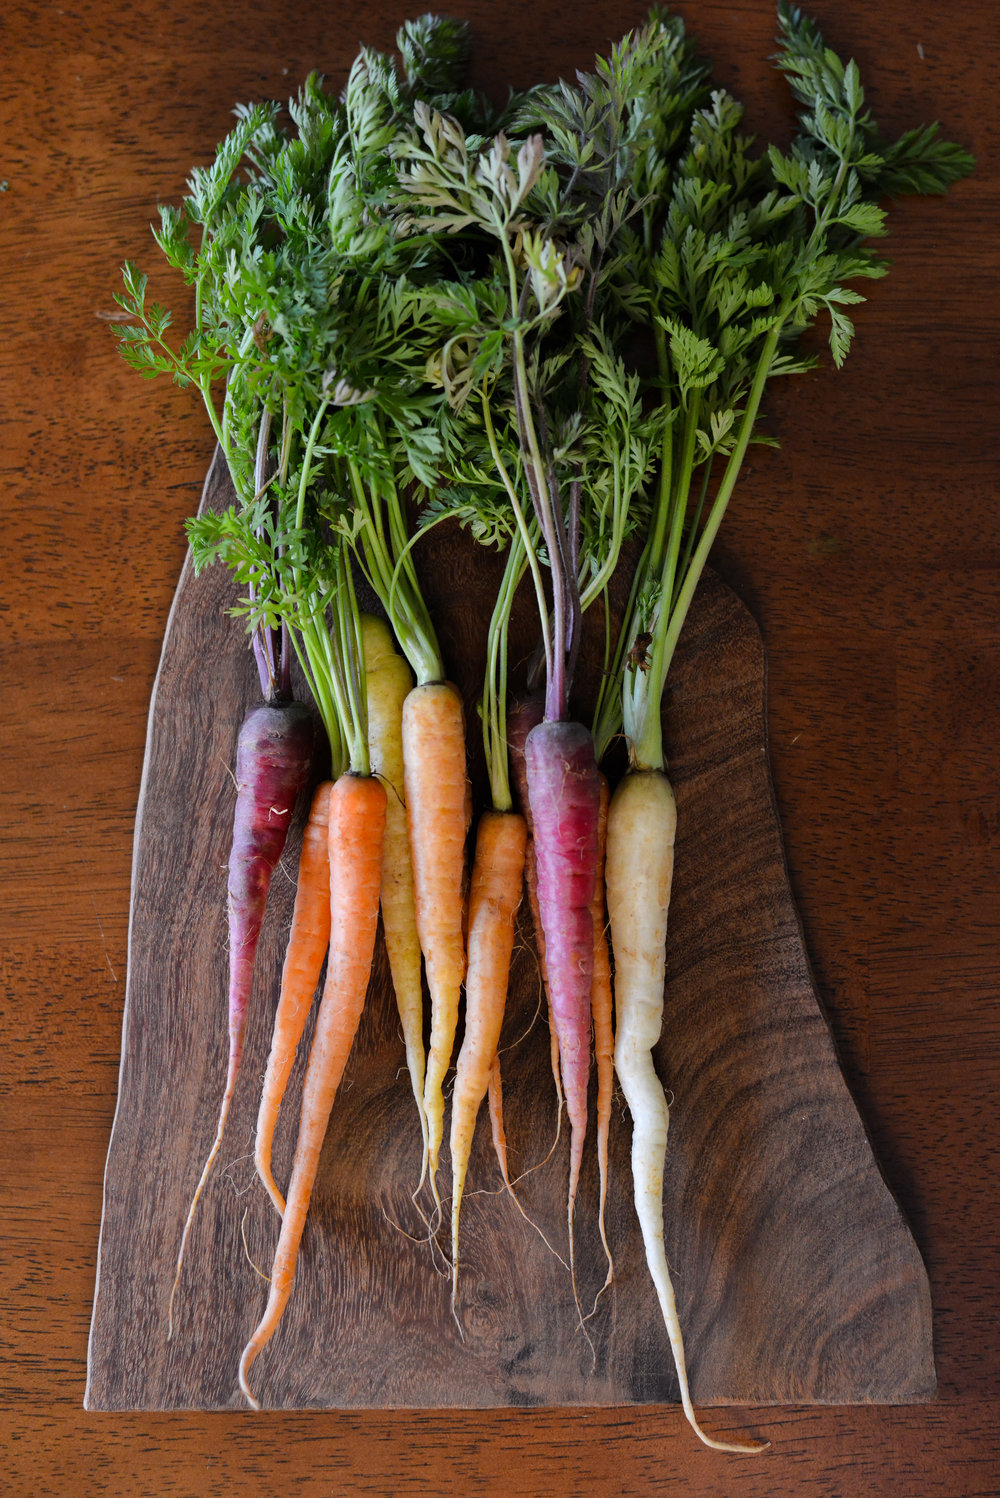 Colorful, beautiful carrots from the farmer's market.